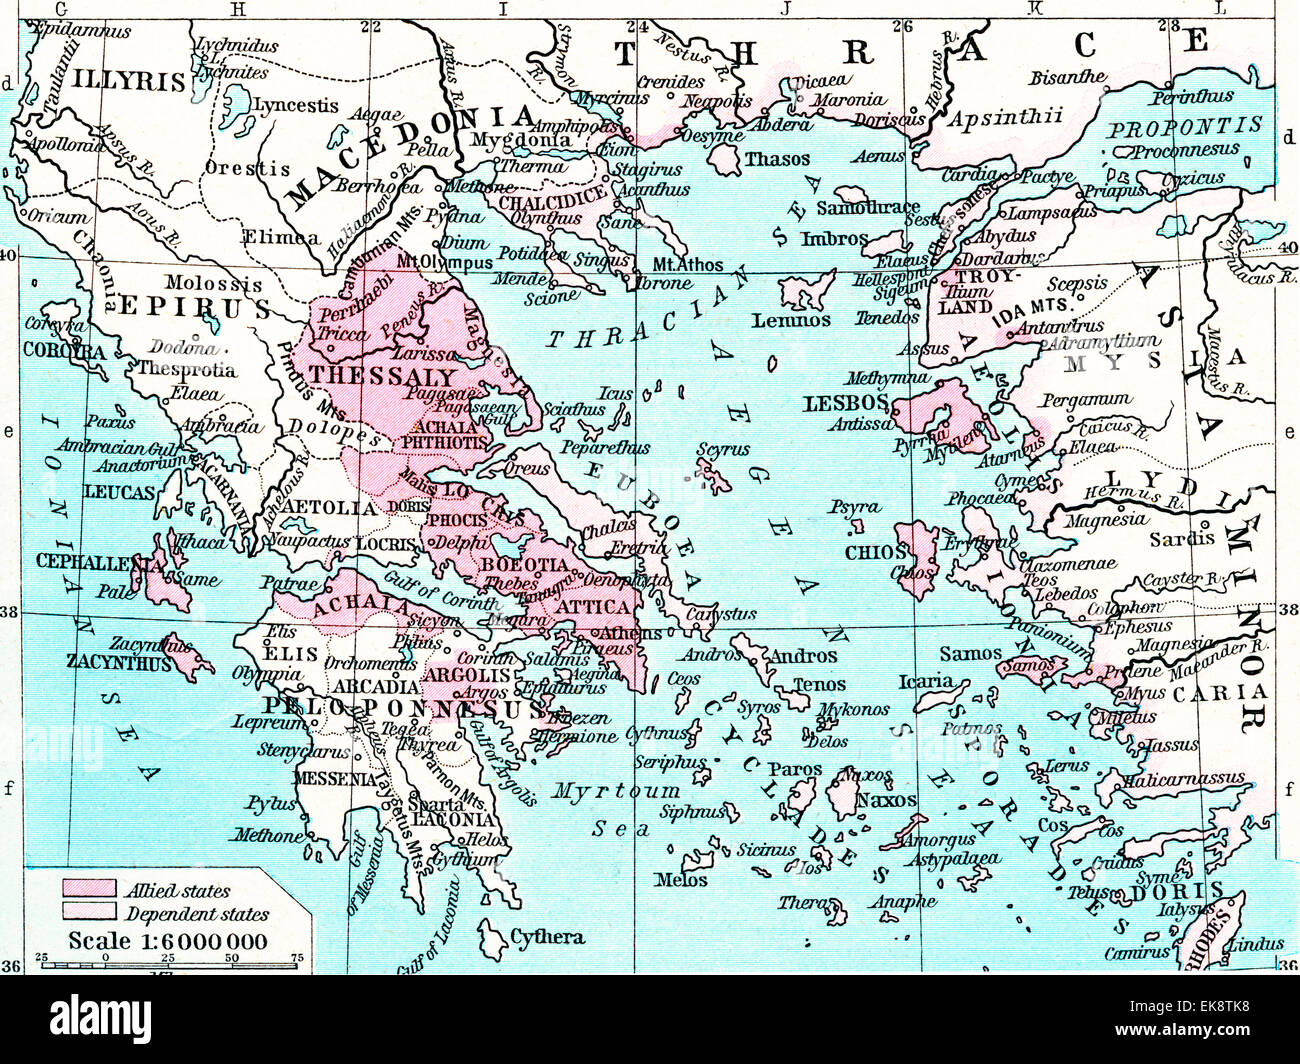 Ancient Athens Map Stock Photos & Ancient Athens Map Stock ... on map of oceans in greece, map of persian war battles 499 479 bc, map of peloponnesian league,